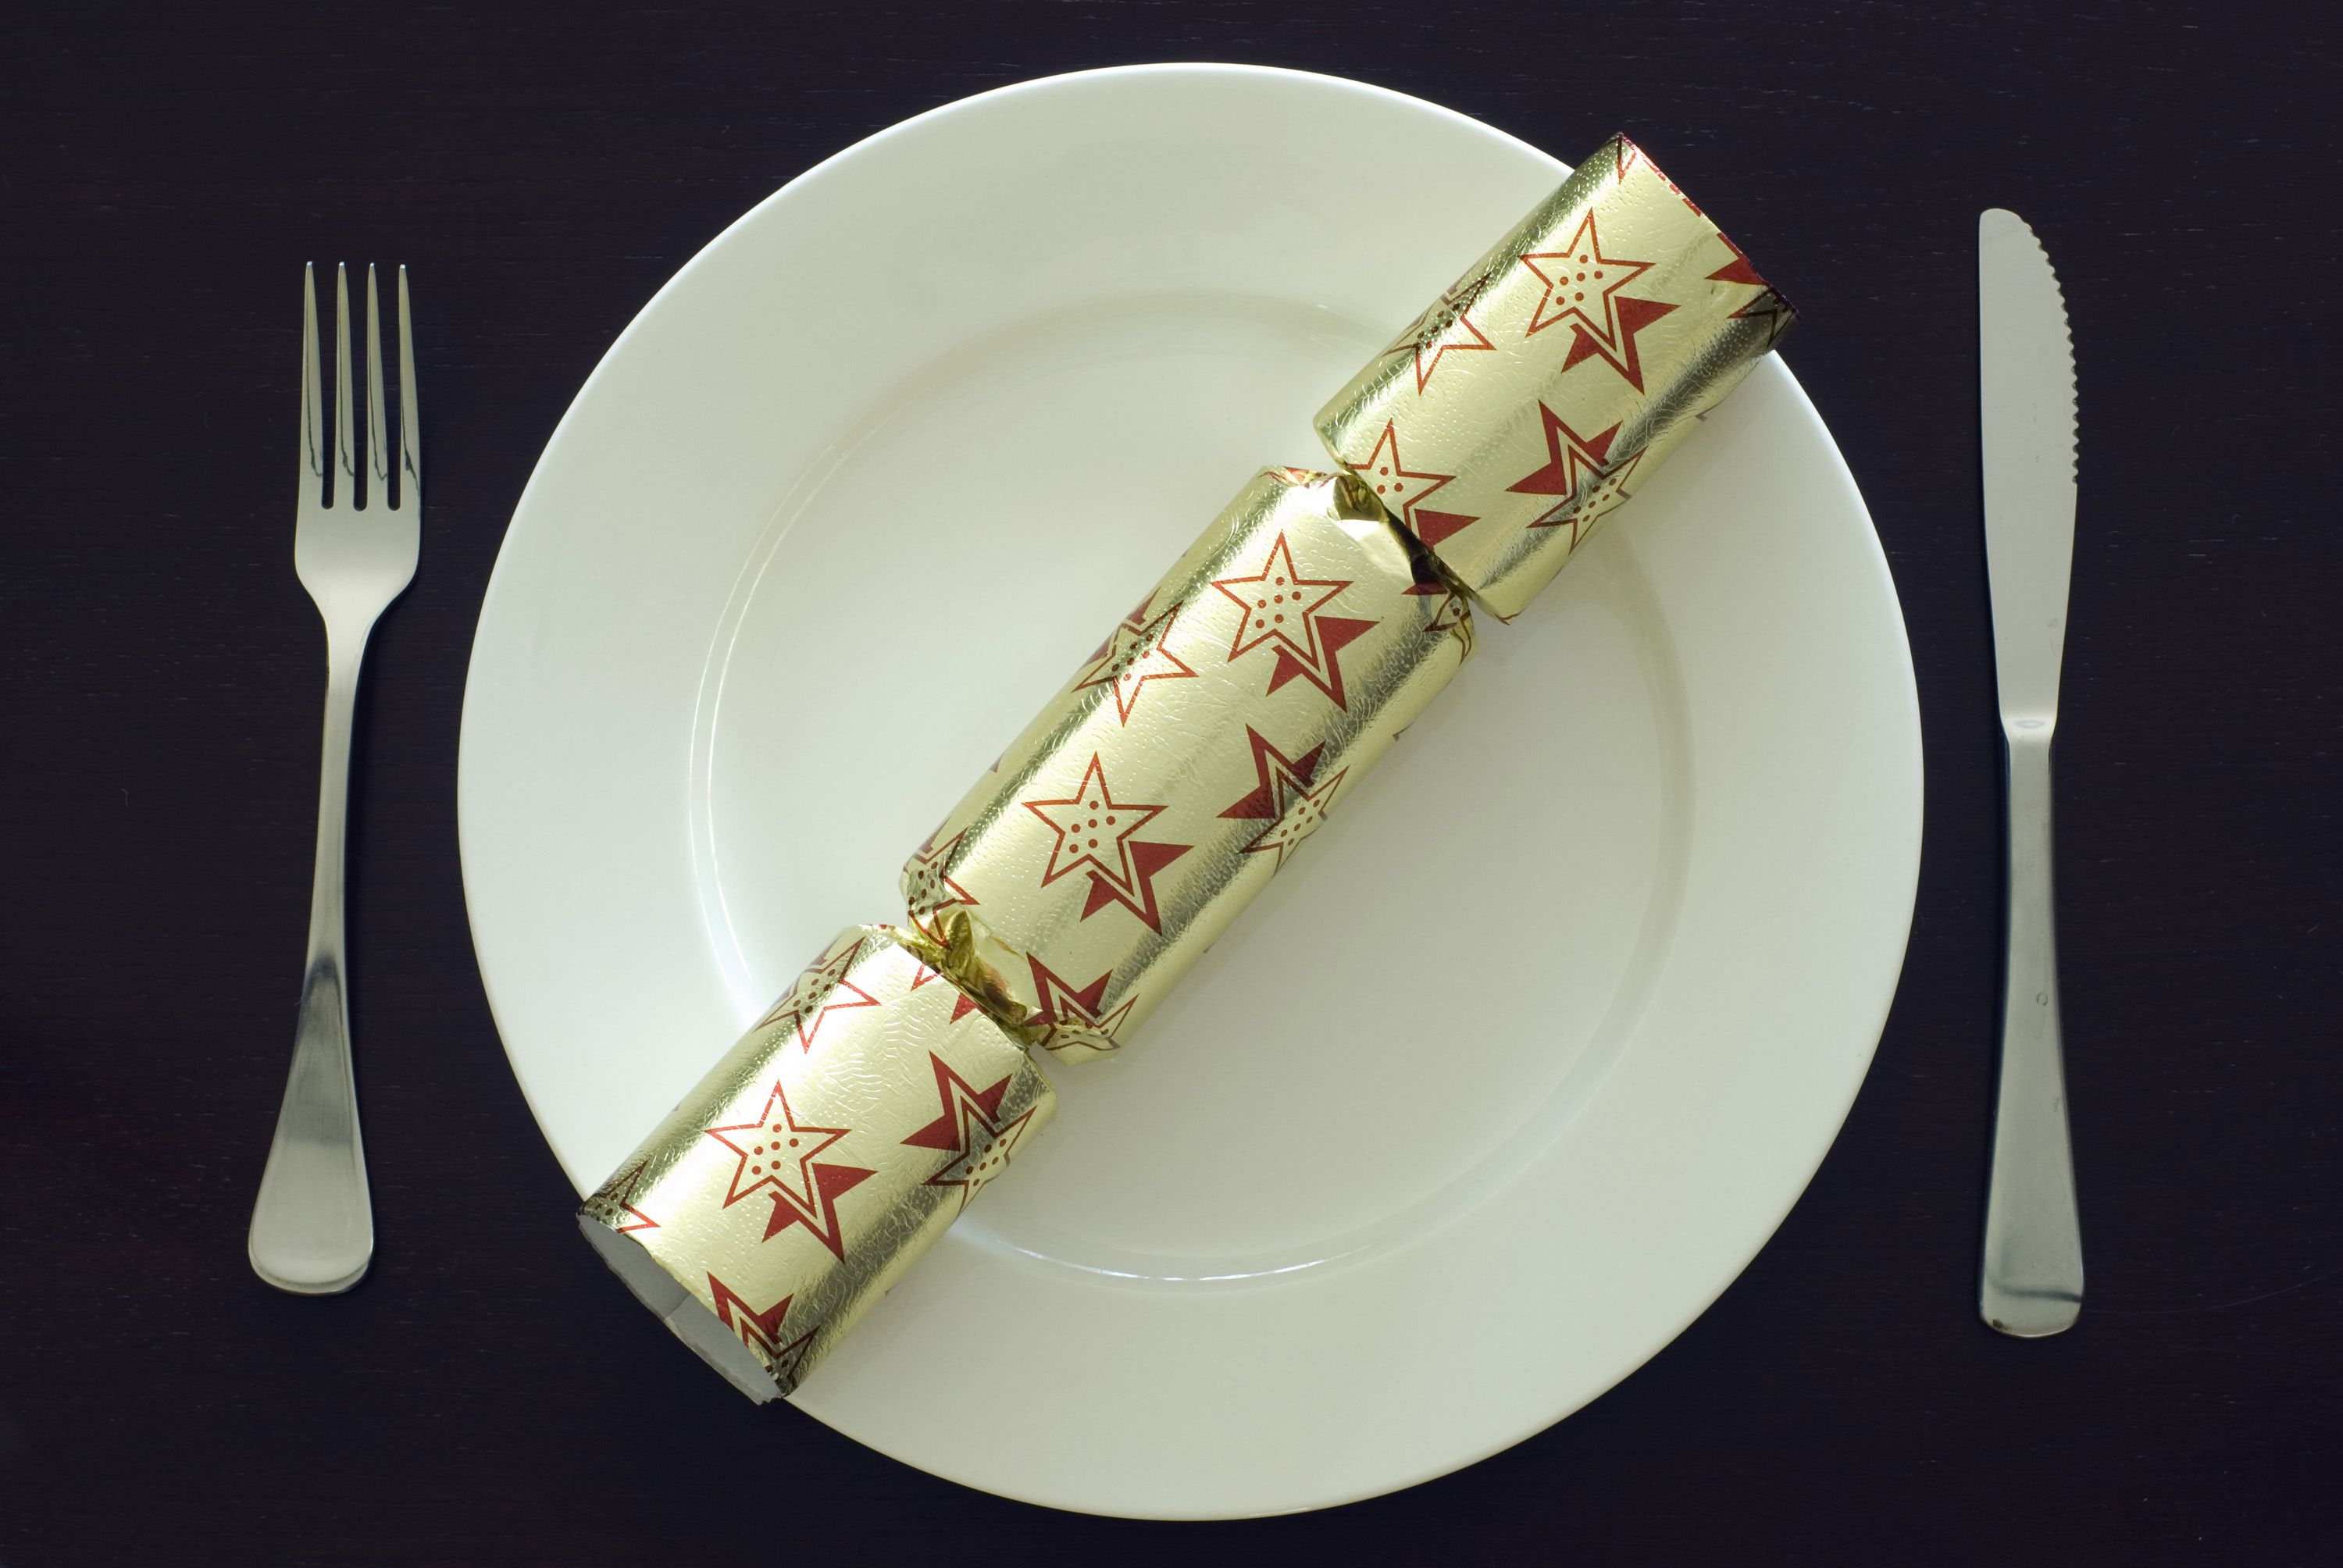 Elegant Design Of The Table Place Setting With White Plate And Silver Sporks And Blade Added With Christmas Gift